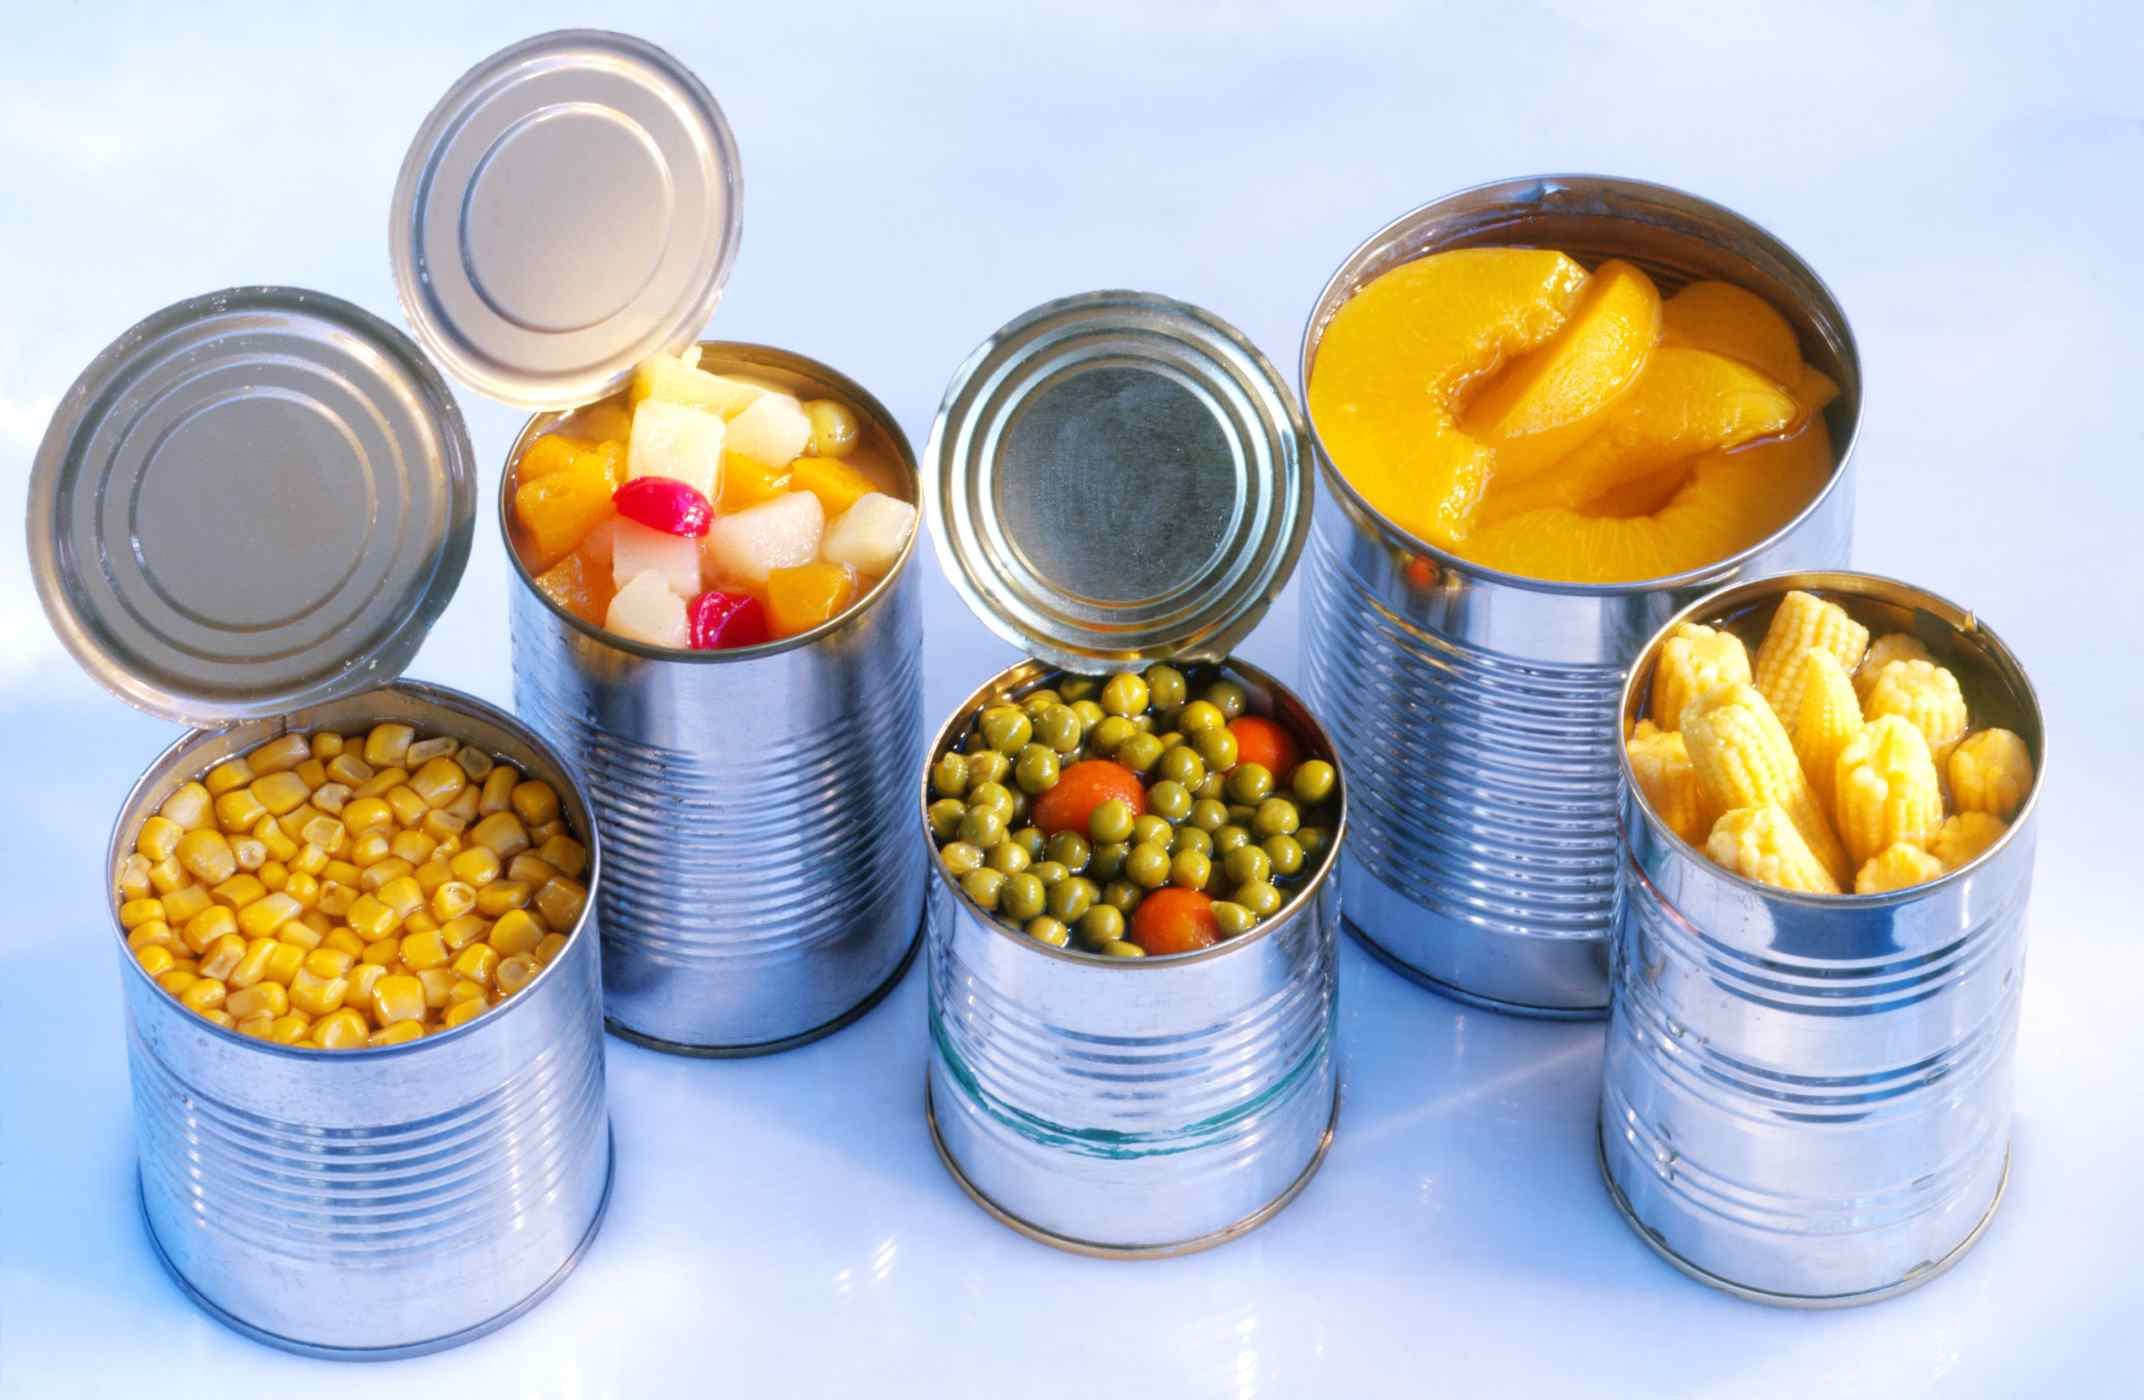 Canned fruits and vegetables are good to buy in bulk.